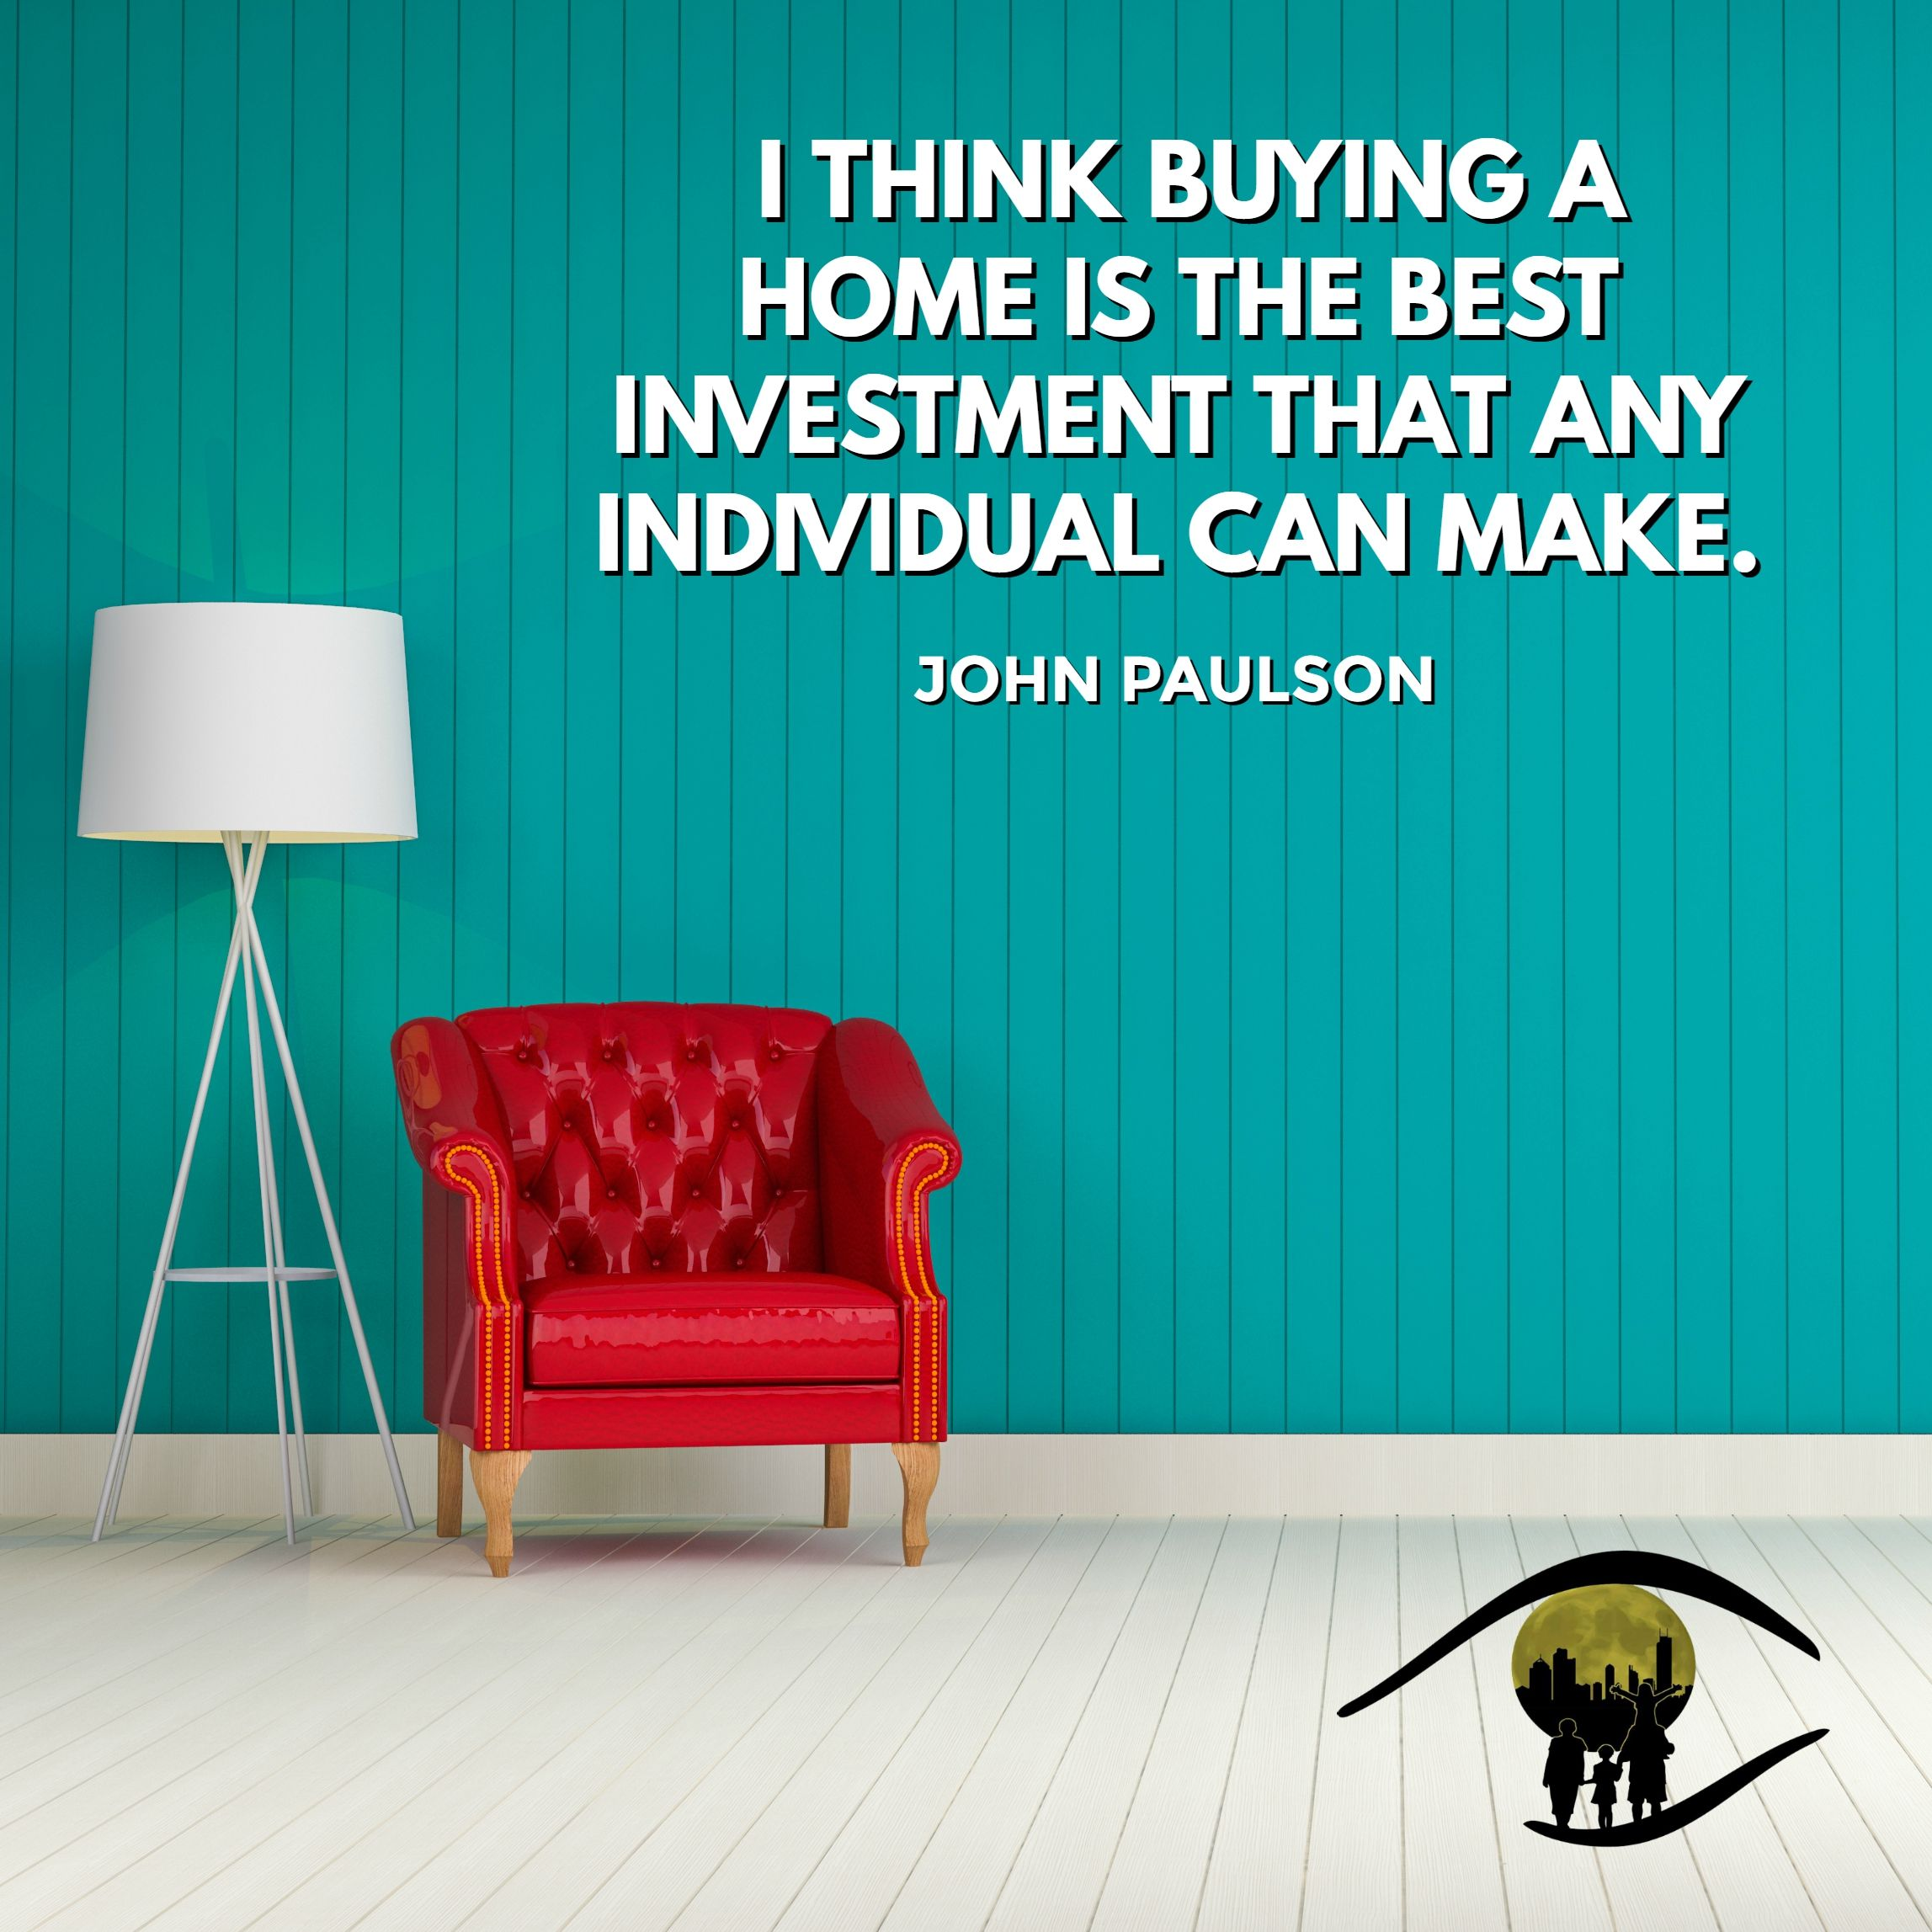 I Think Buying A Home Is The Best Investment That Any Individual John Paulson 512 Center St Waukegan Il Home Buying Sale House Best Investments